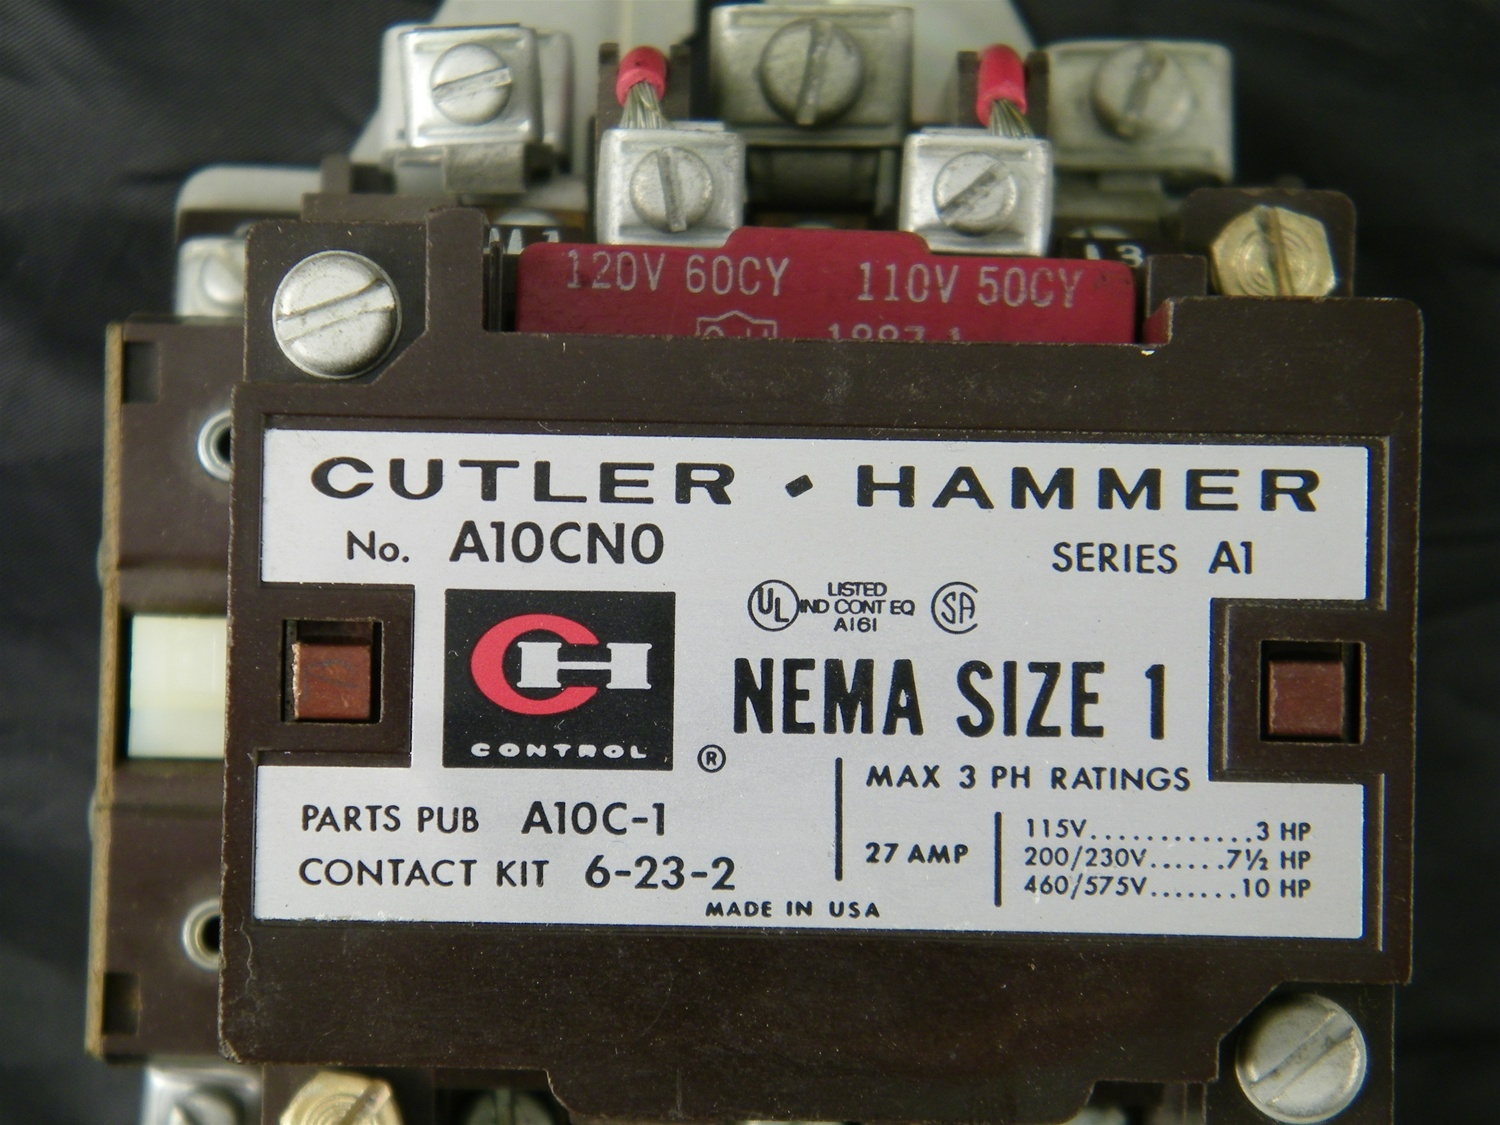 a10cno a10cn0 cutler hammer Lighting Contactor Diagram Magnetic Starter Wiring Diagram a10 cutler hammer contactor wiring diagram